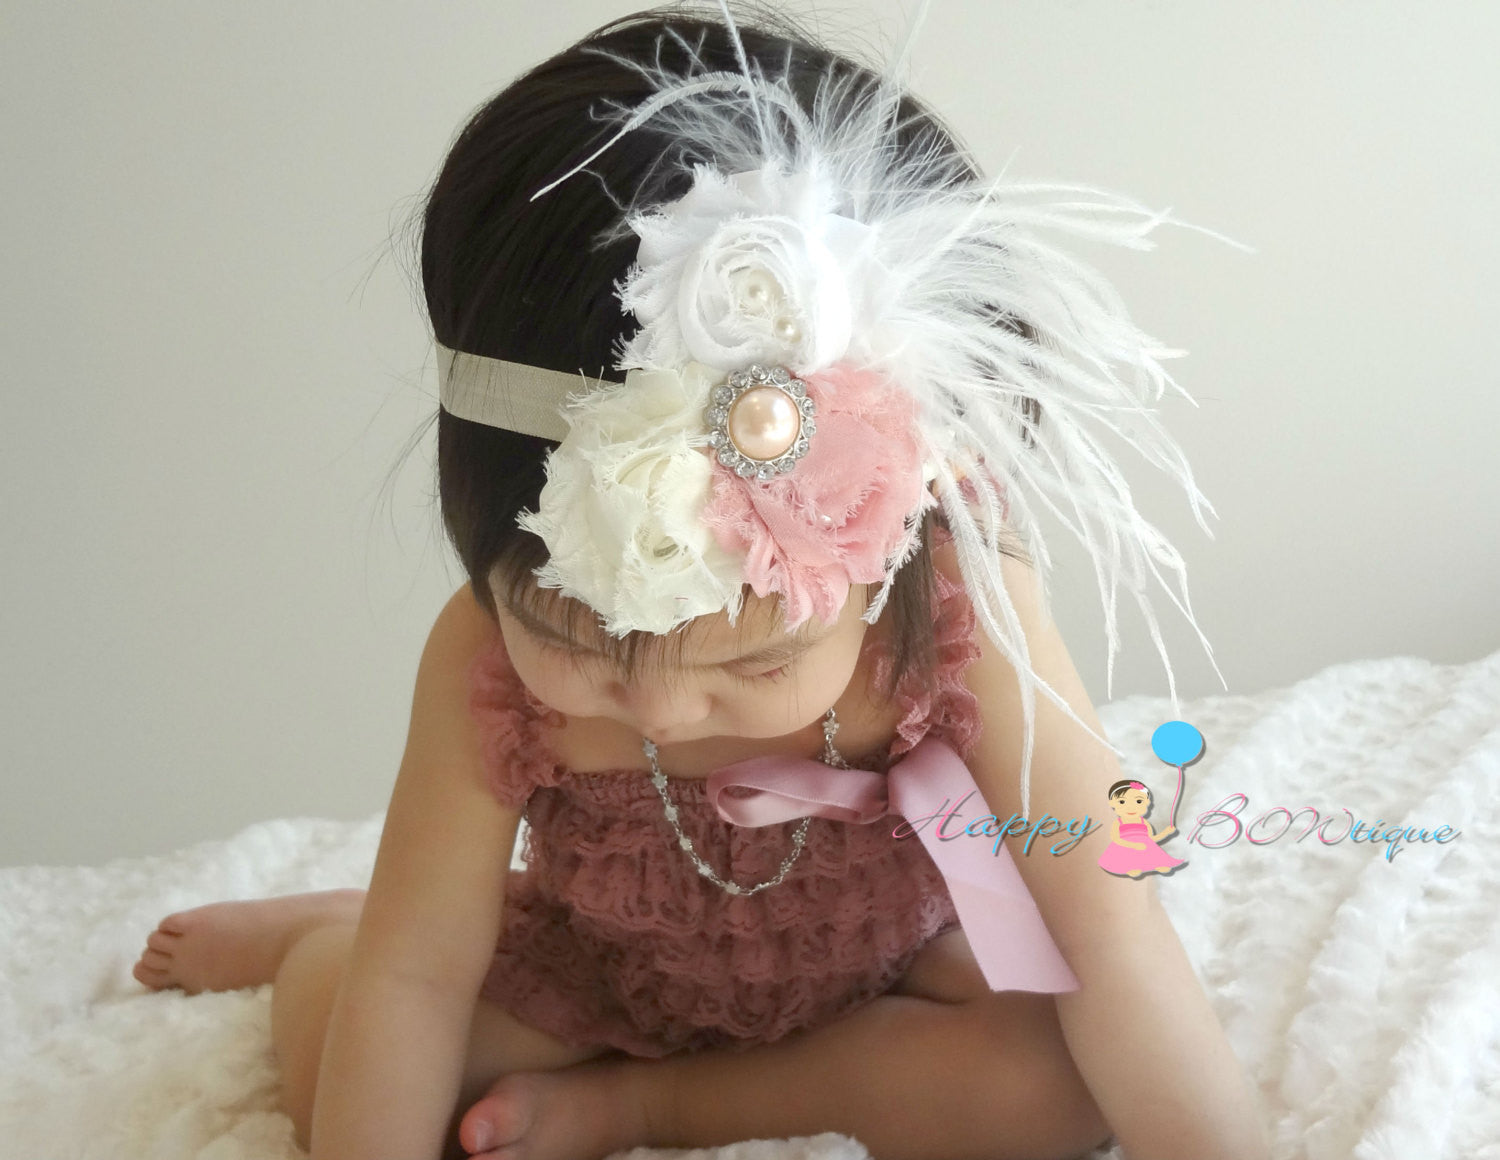 New Dusty Rose Feather Petti Lace Romper Set - Happy BOWtique - children's clothing, Baby Girl clothing